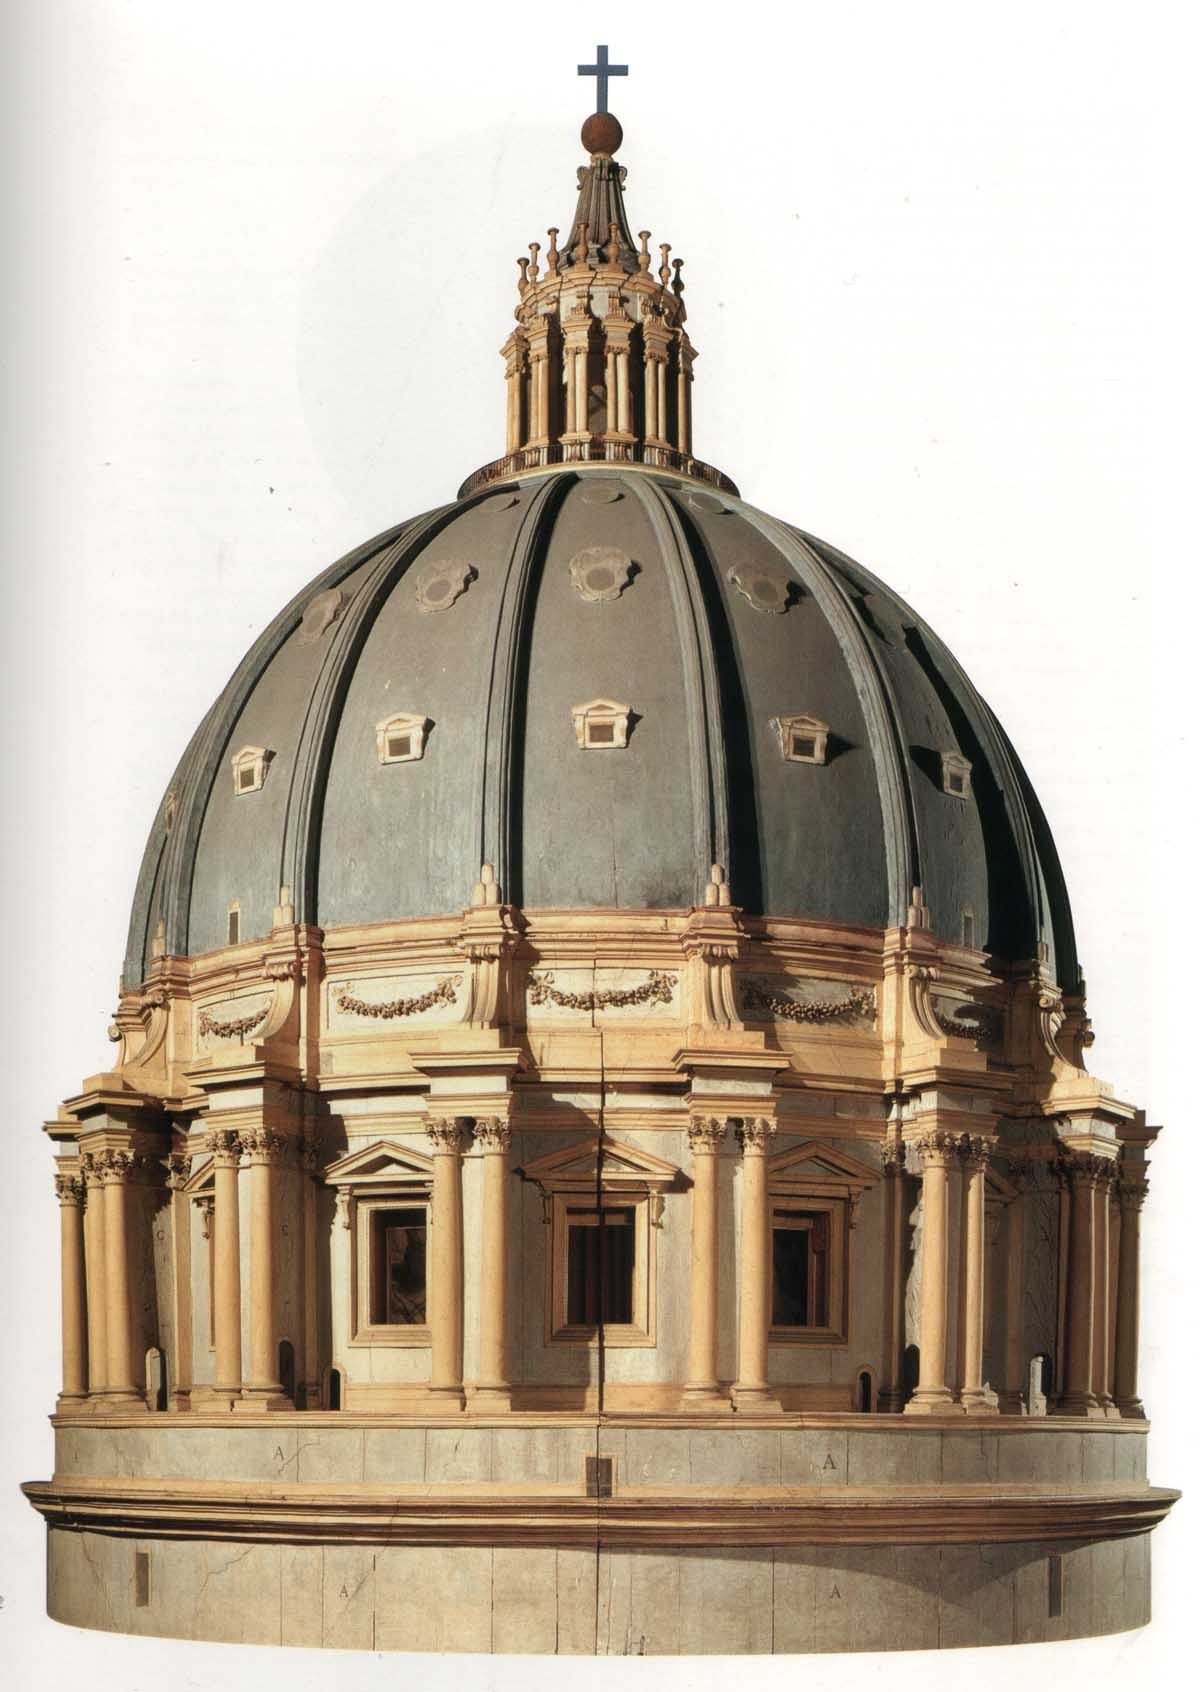 Model for the dome of St Peter's by Michelangelo